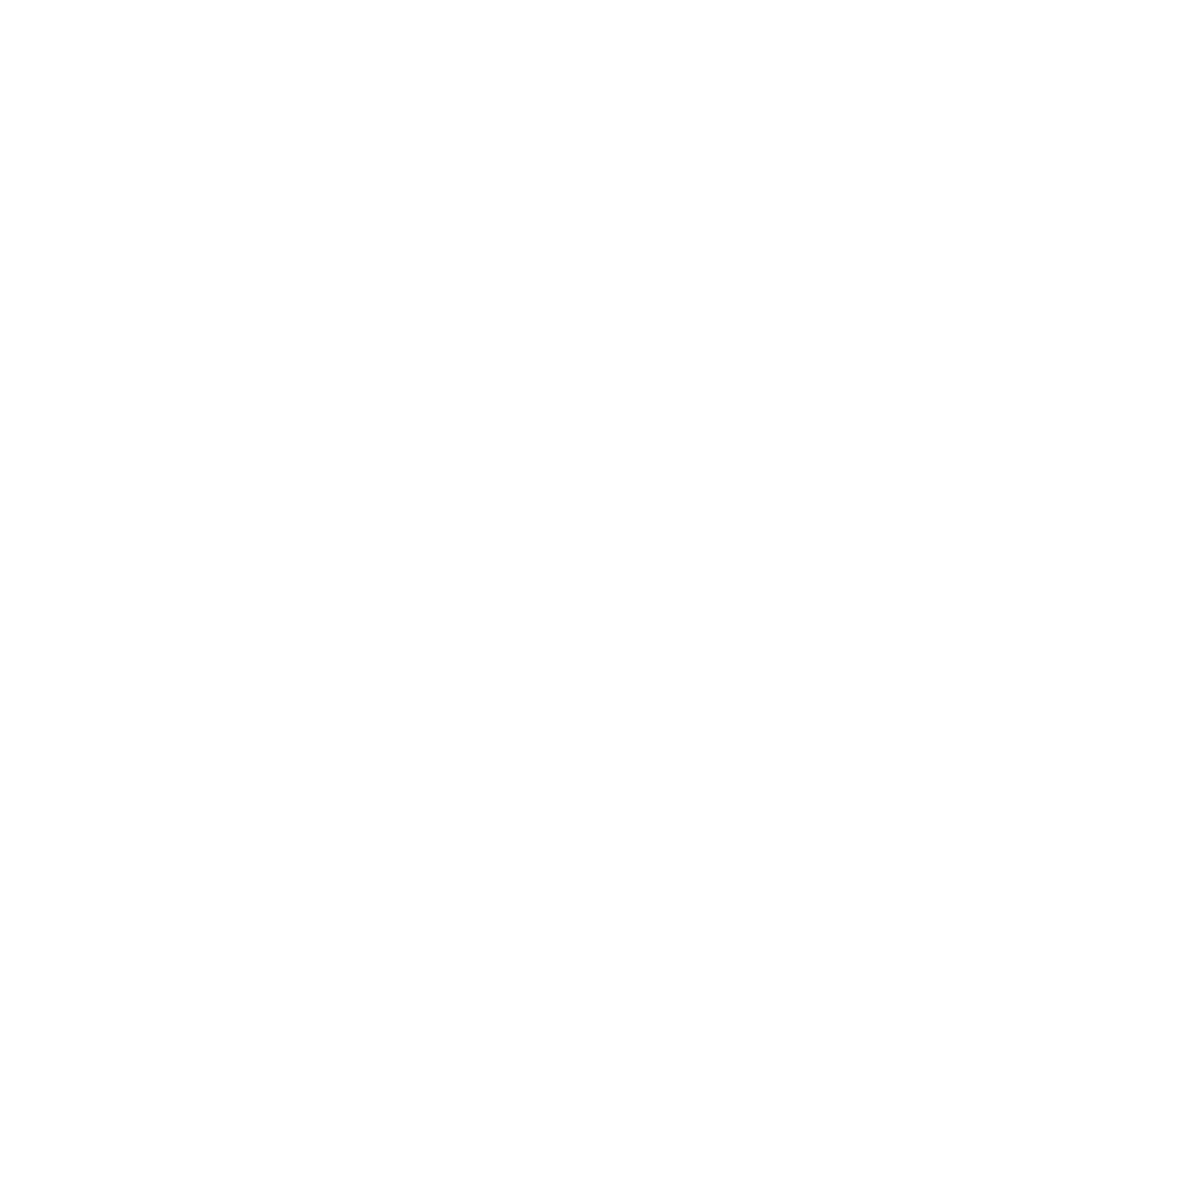 three people interconnected in a circle